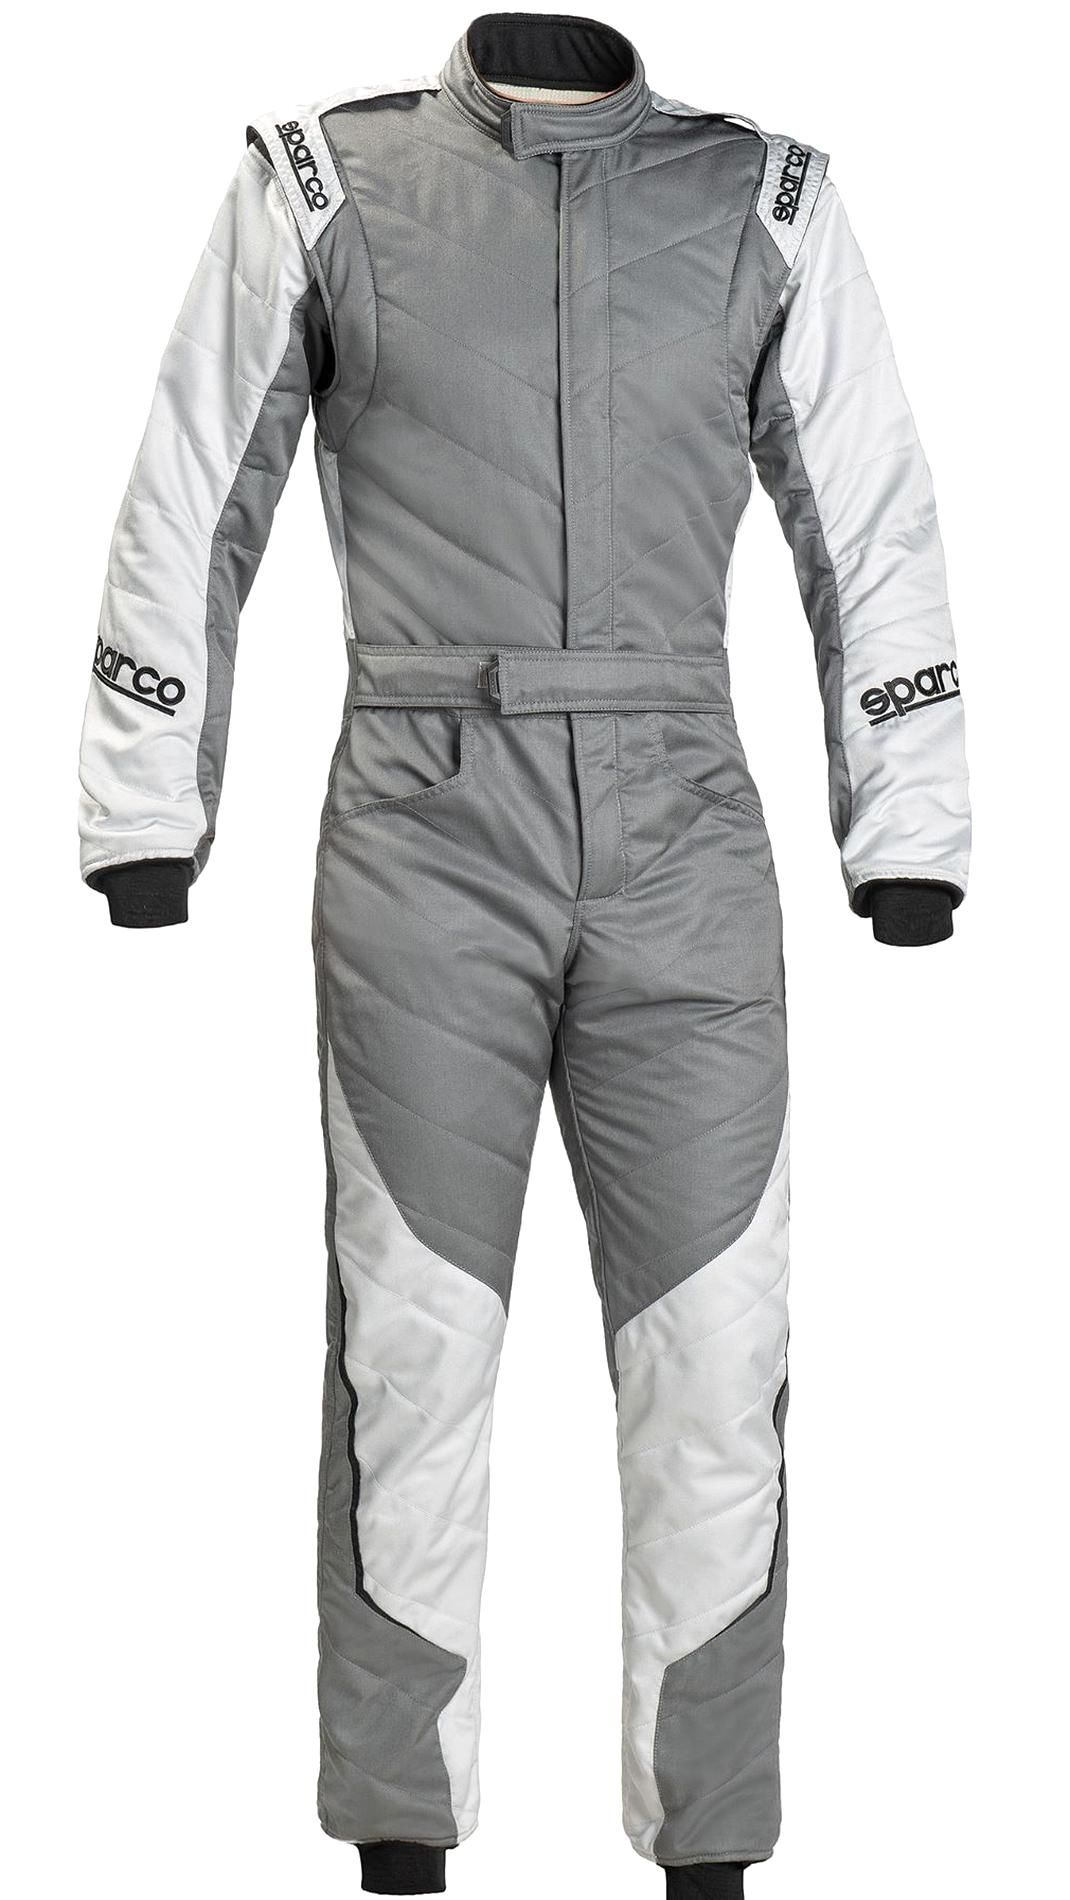 Sparco Energy Rs 5 Racing Suit In 2020 Racing Suit Suits Motorcycle Jacket